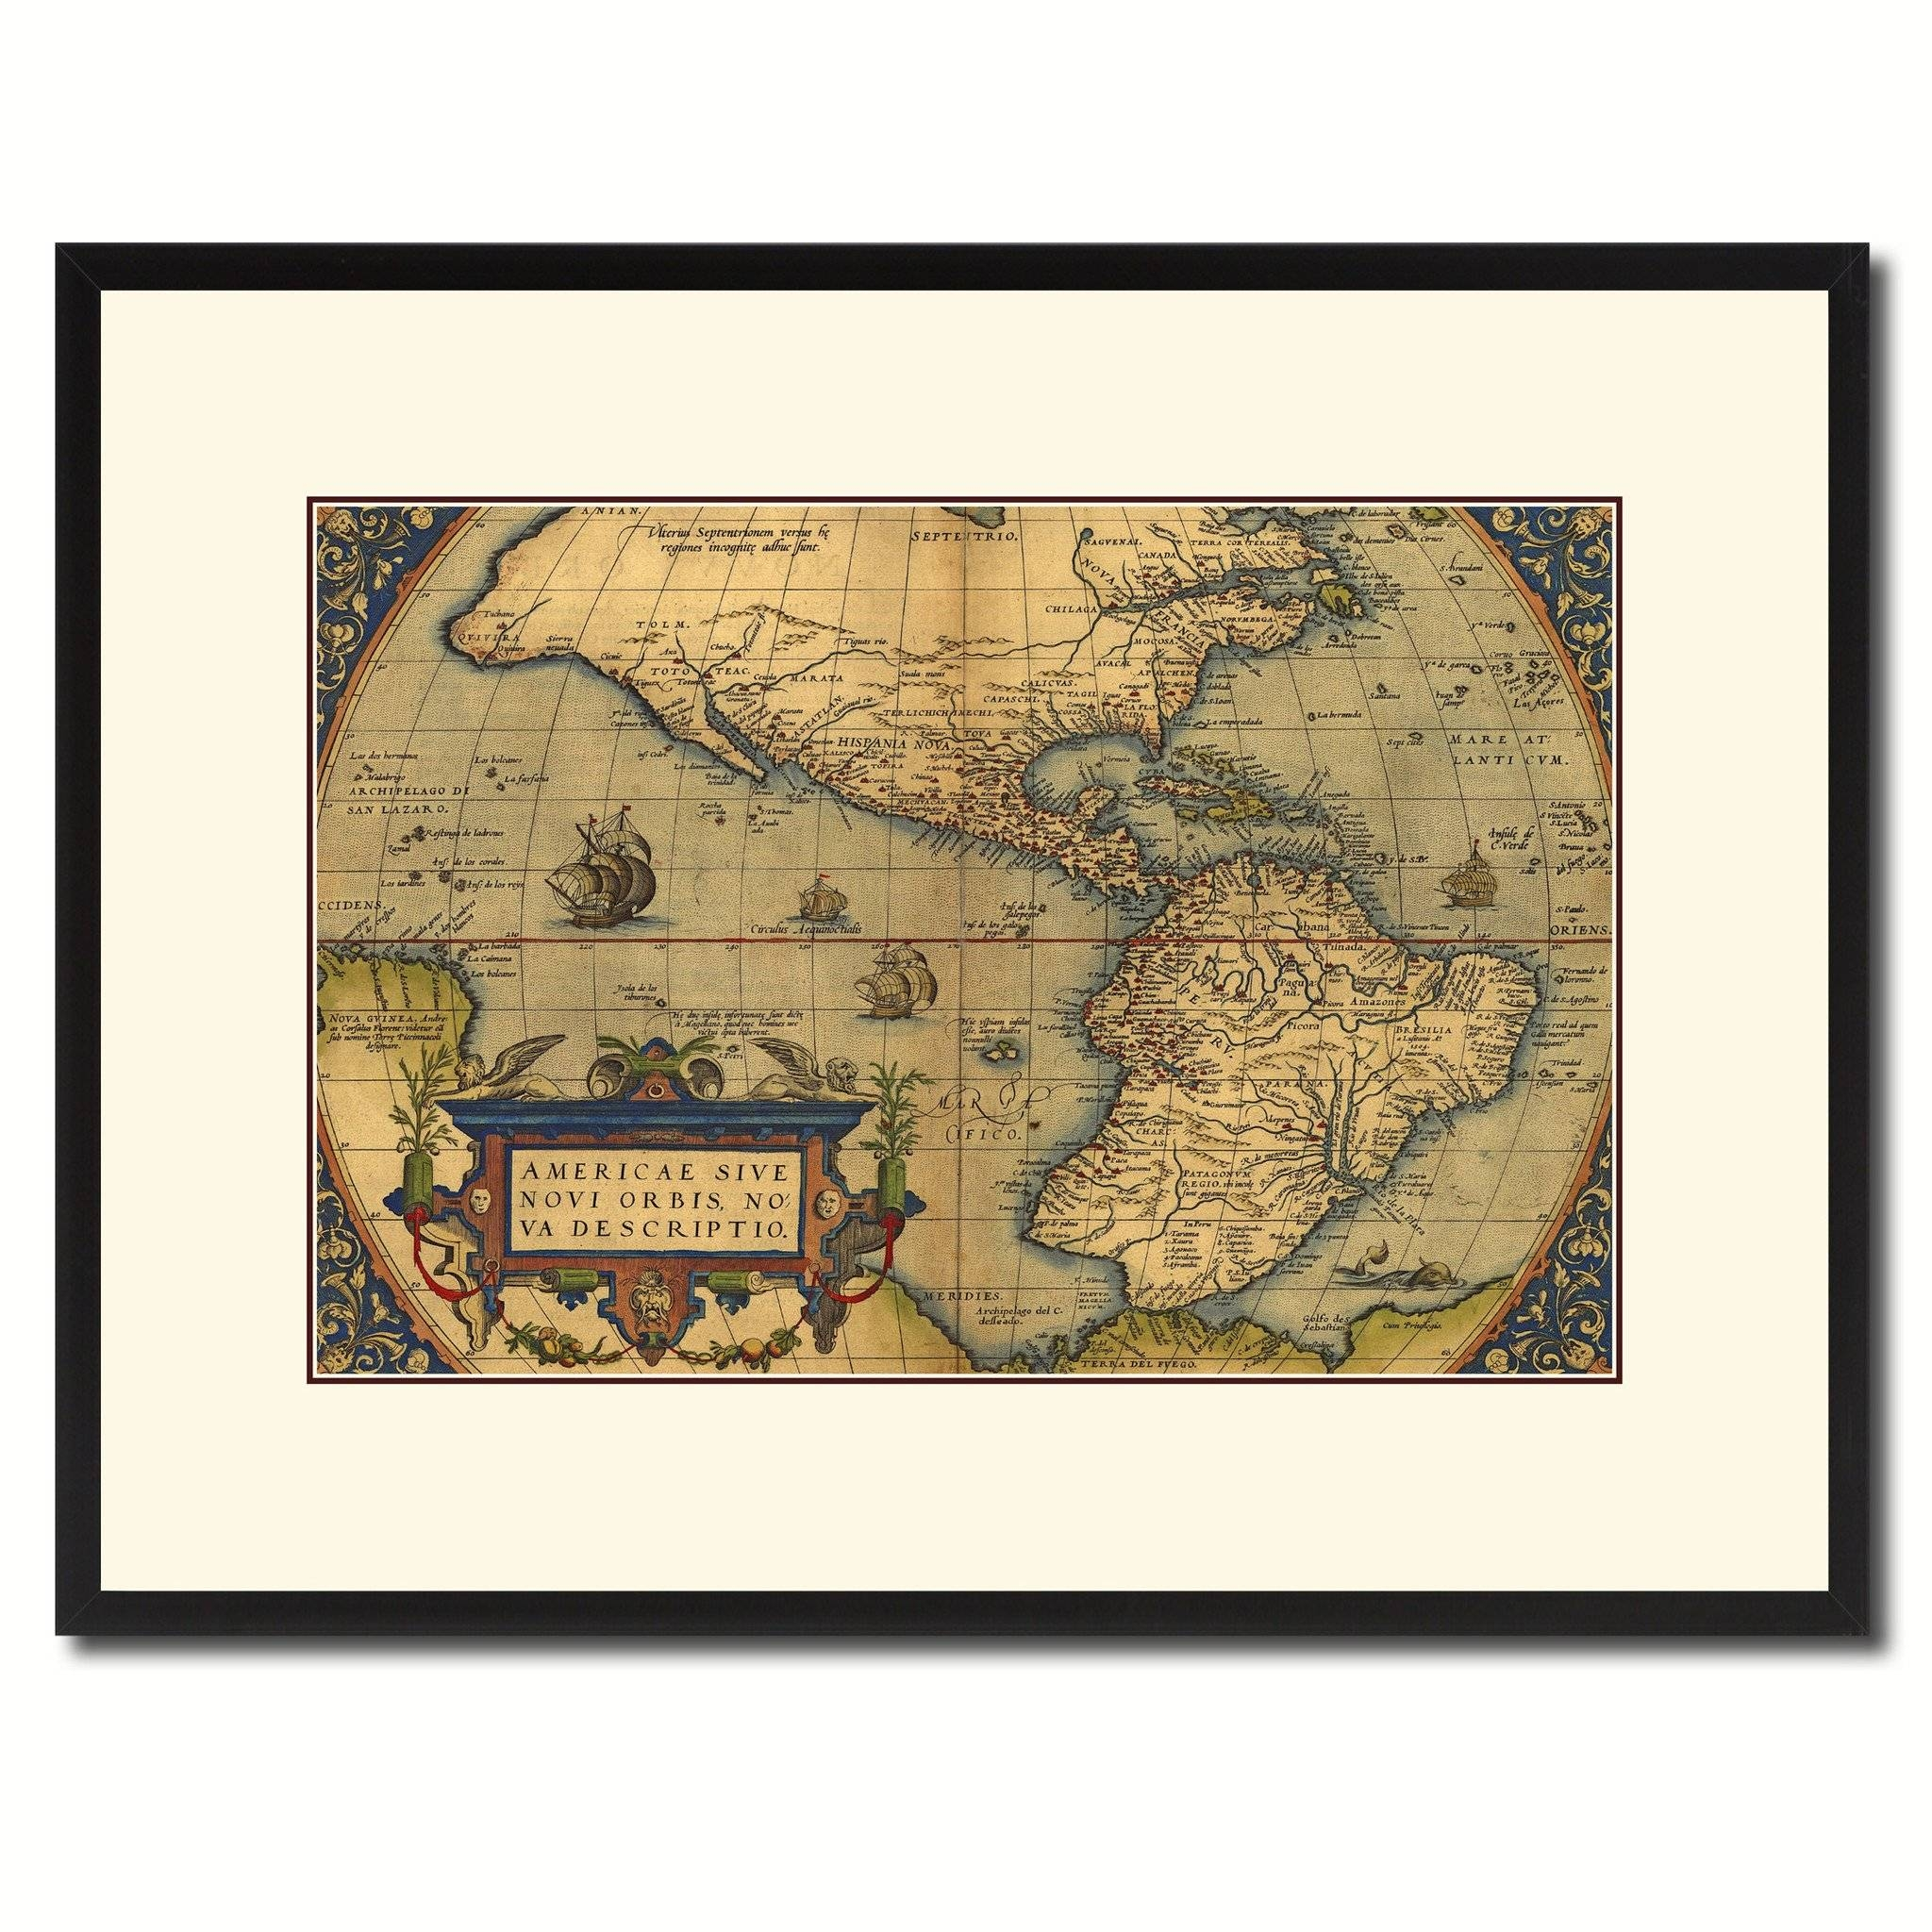 North South America Vintage Antique Map Wall Art Home Decor Gift With Regard To Newest Map Wall Art (View 14 of 25)